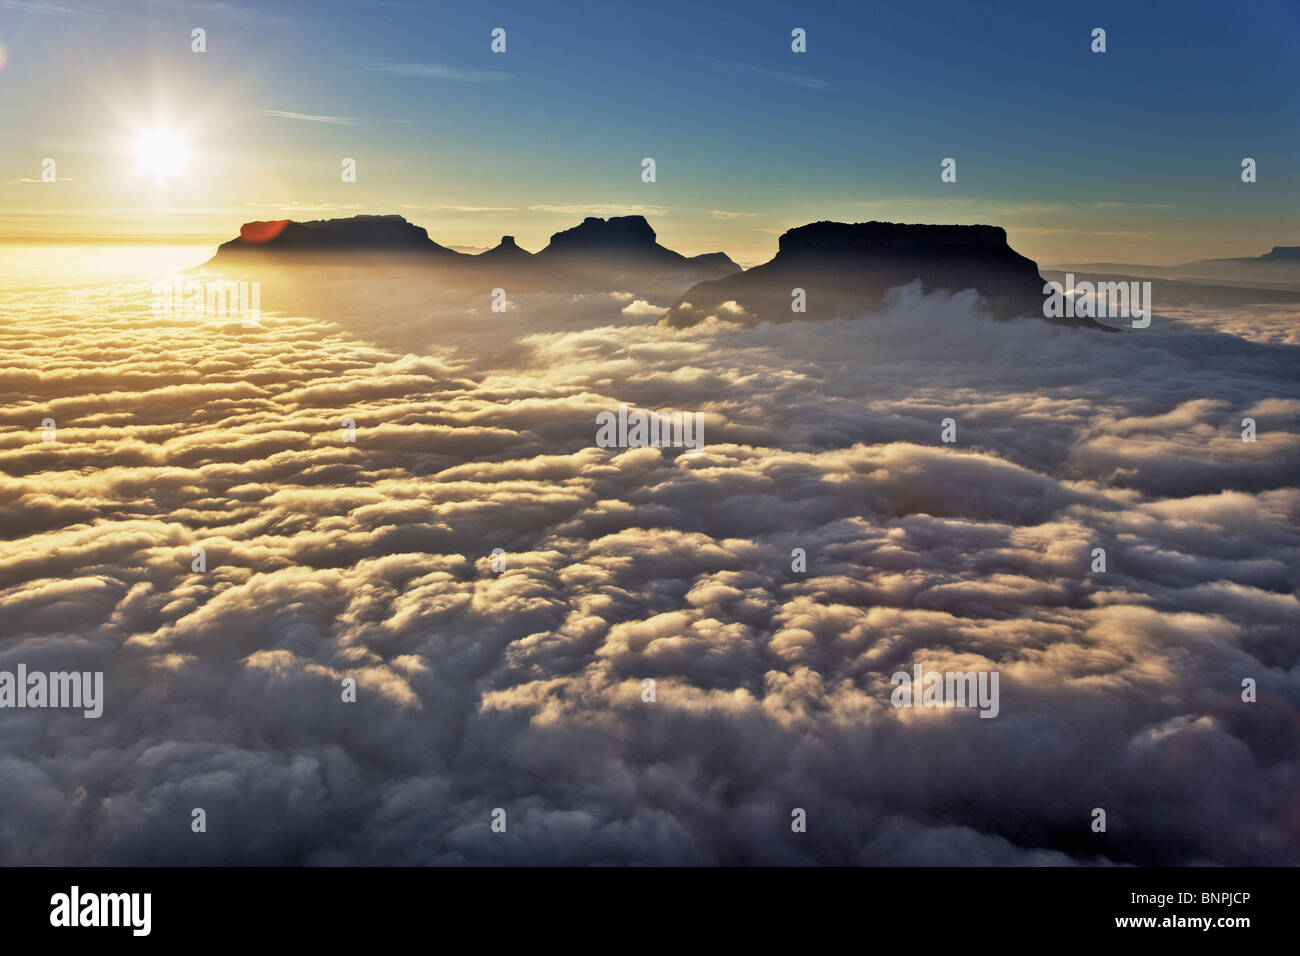 Aerial view of clouds swirling around the summit of the sandstone mountains or  tepui  Venezuela - Stock Image